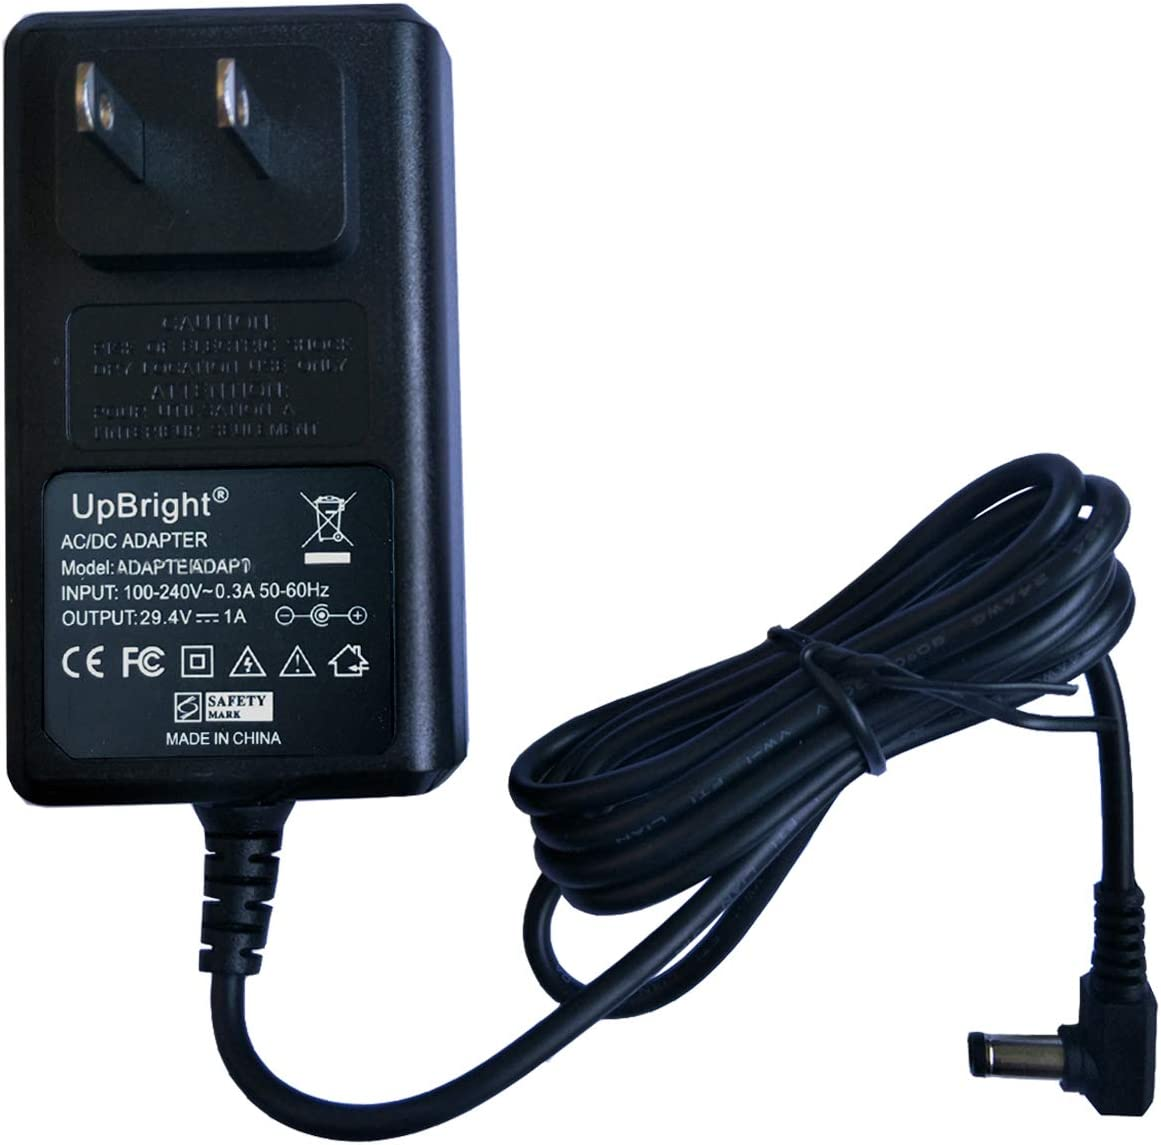 UpBright AC/DC Adapter Compatible with NEQUARE S23 Series S23-1 25.9V 2200mAh Rechargeable Lithium-ion Battery 23Kpa Super Suction Pet Hair Cordless Stick Vacuum Cleaner 29V 30V Power Supply Charger